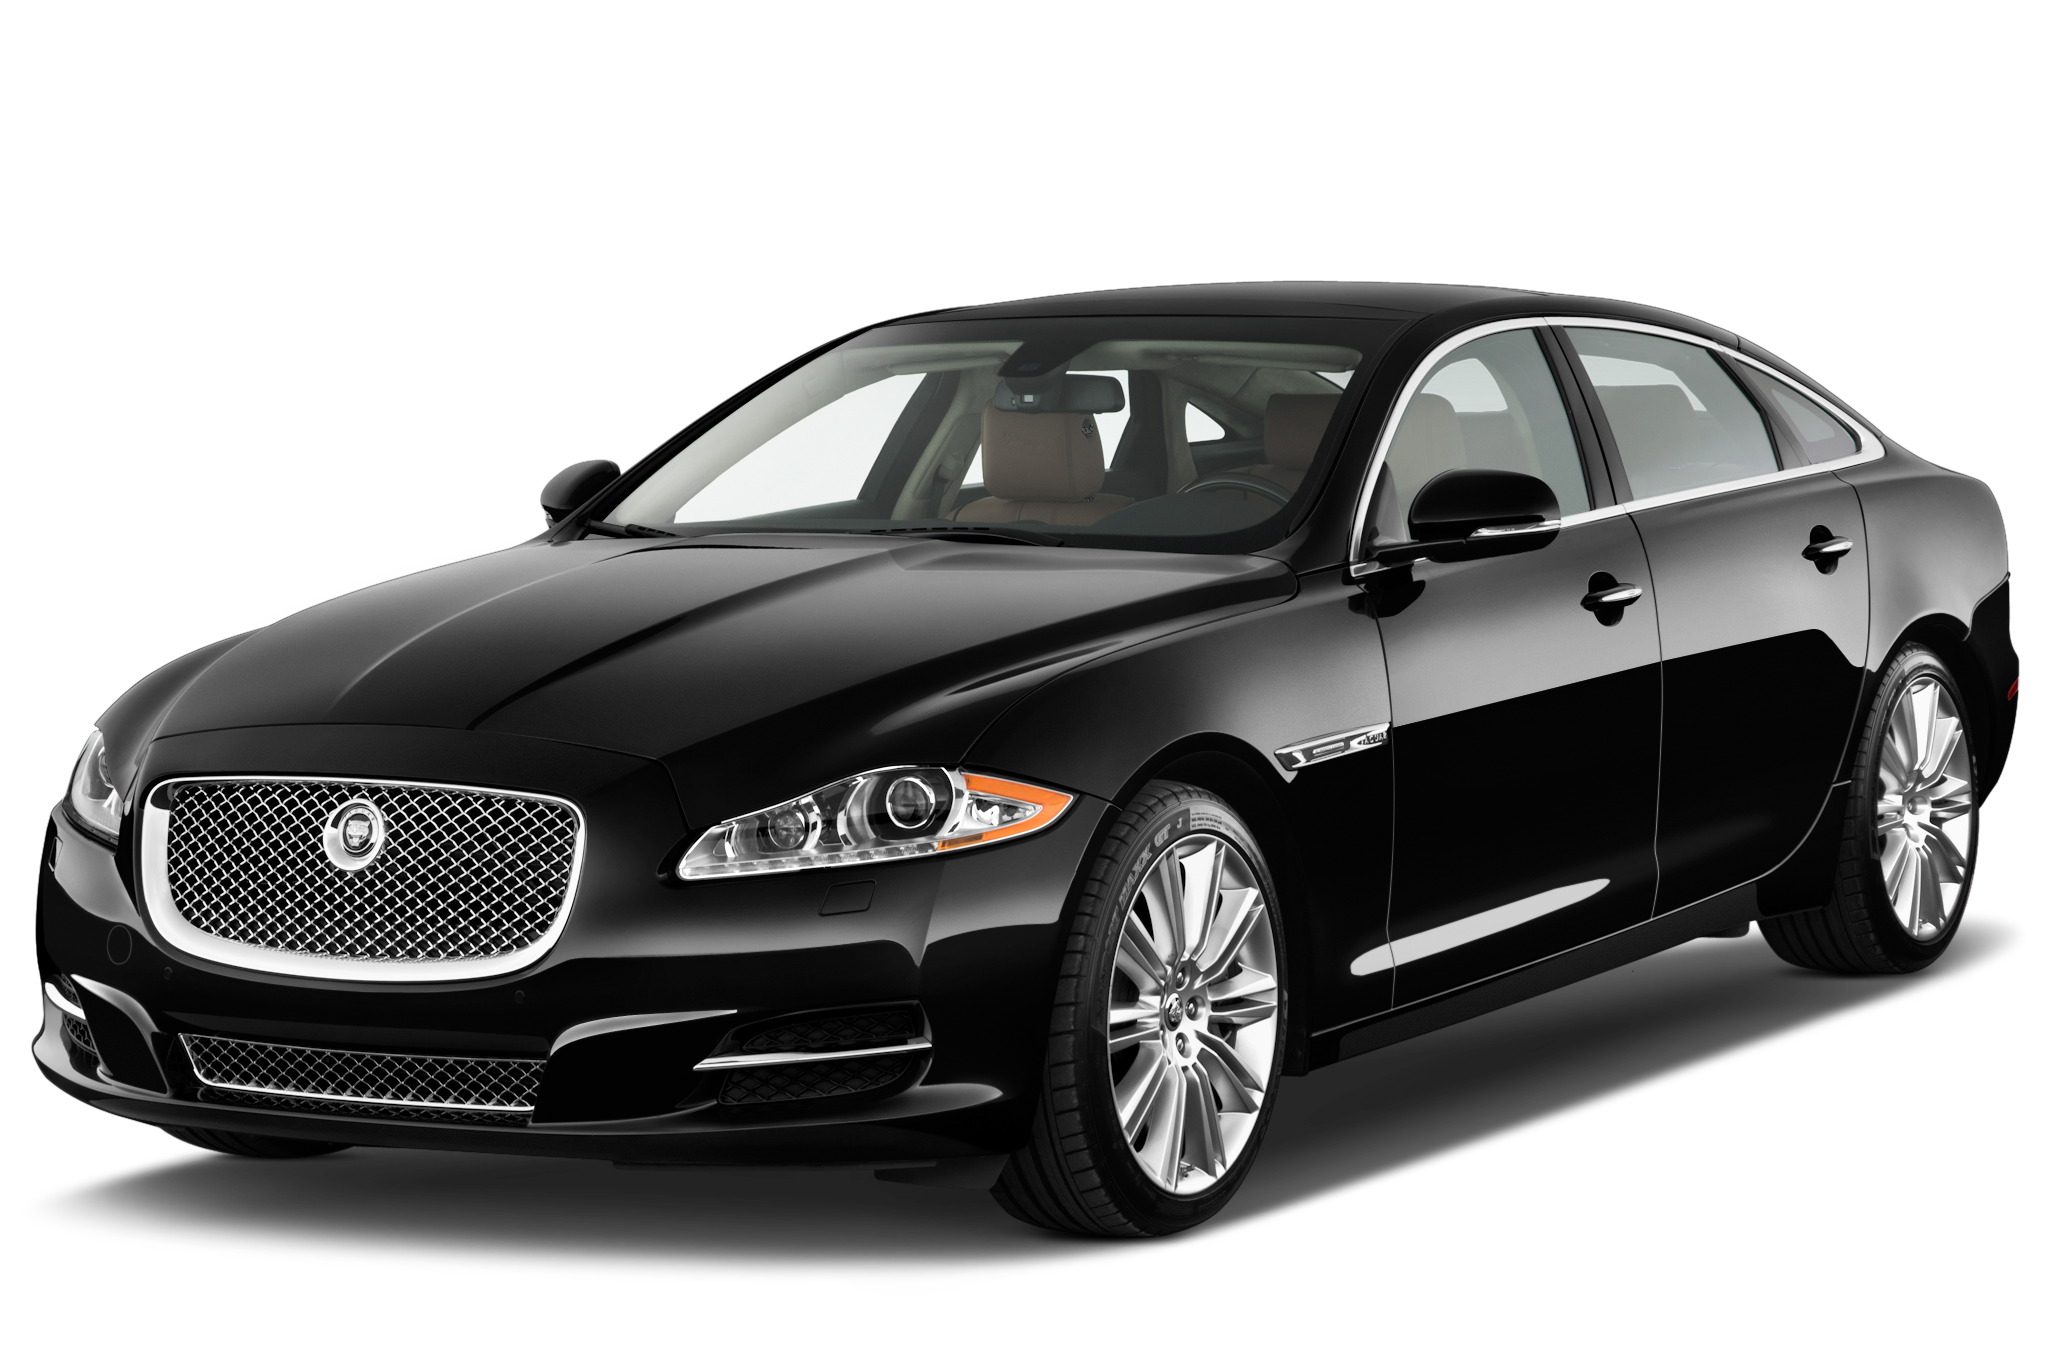 2015 jaguar xj series reviews and rating motor trend rh motortrend com 2012 Jaguar XJL 2012 jaguar xj owners manual